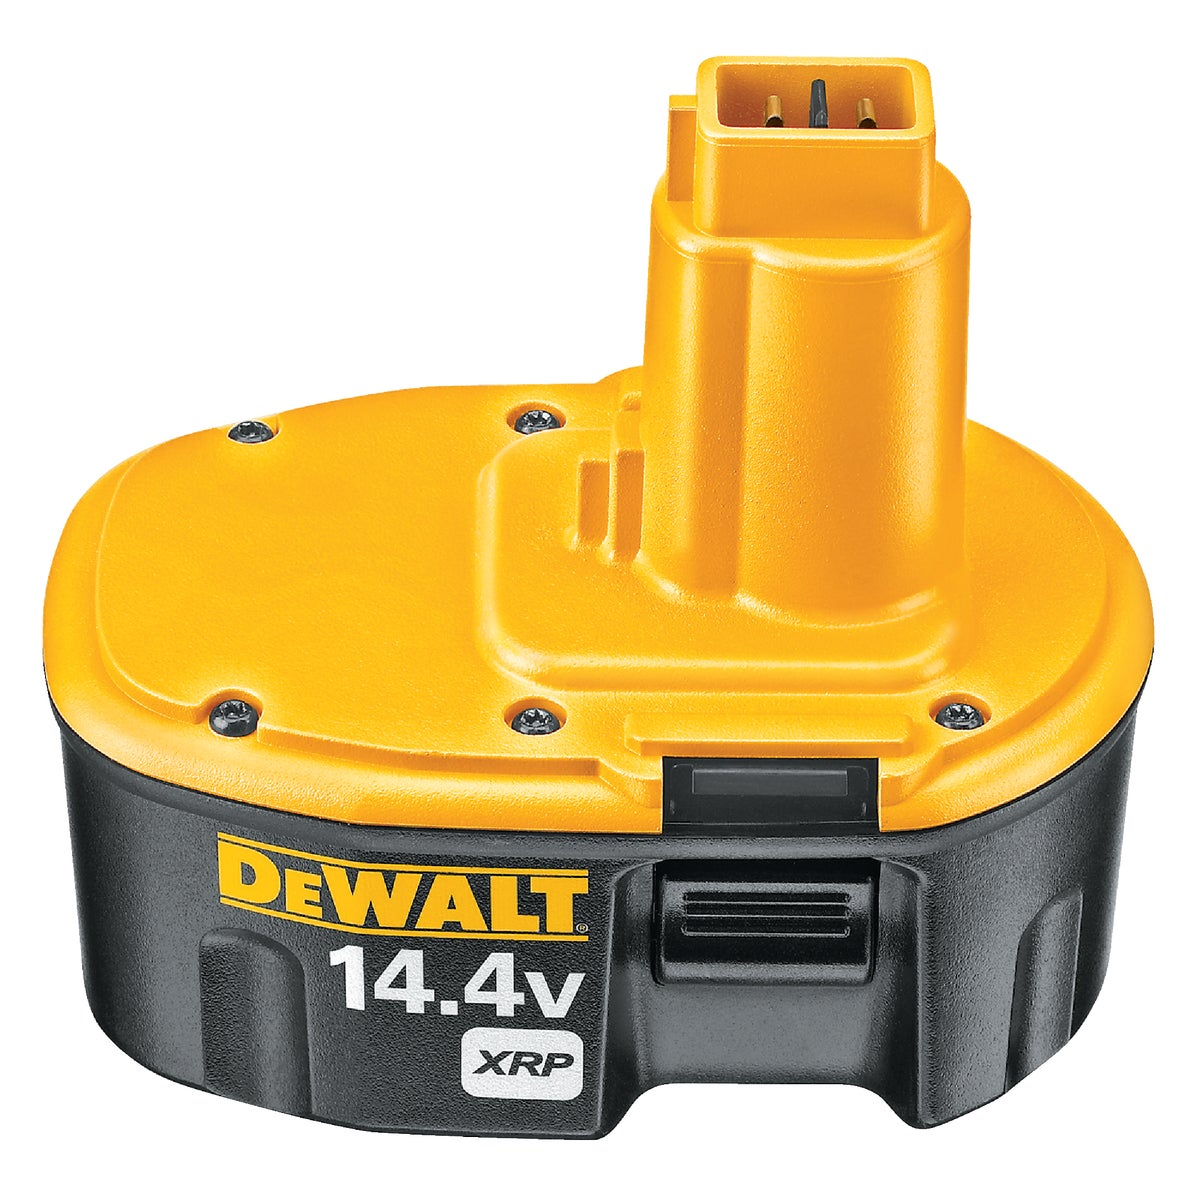 14.4V XRP BATTERY PACK - DC9091 by DeWalt